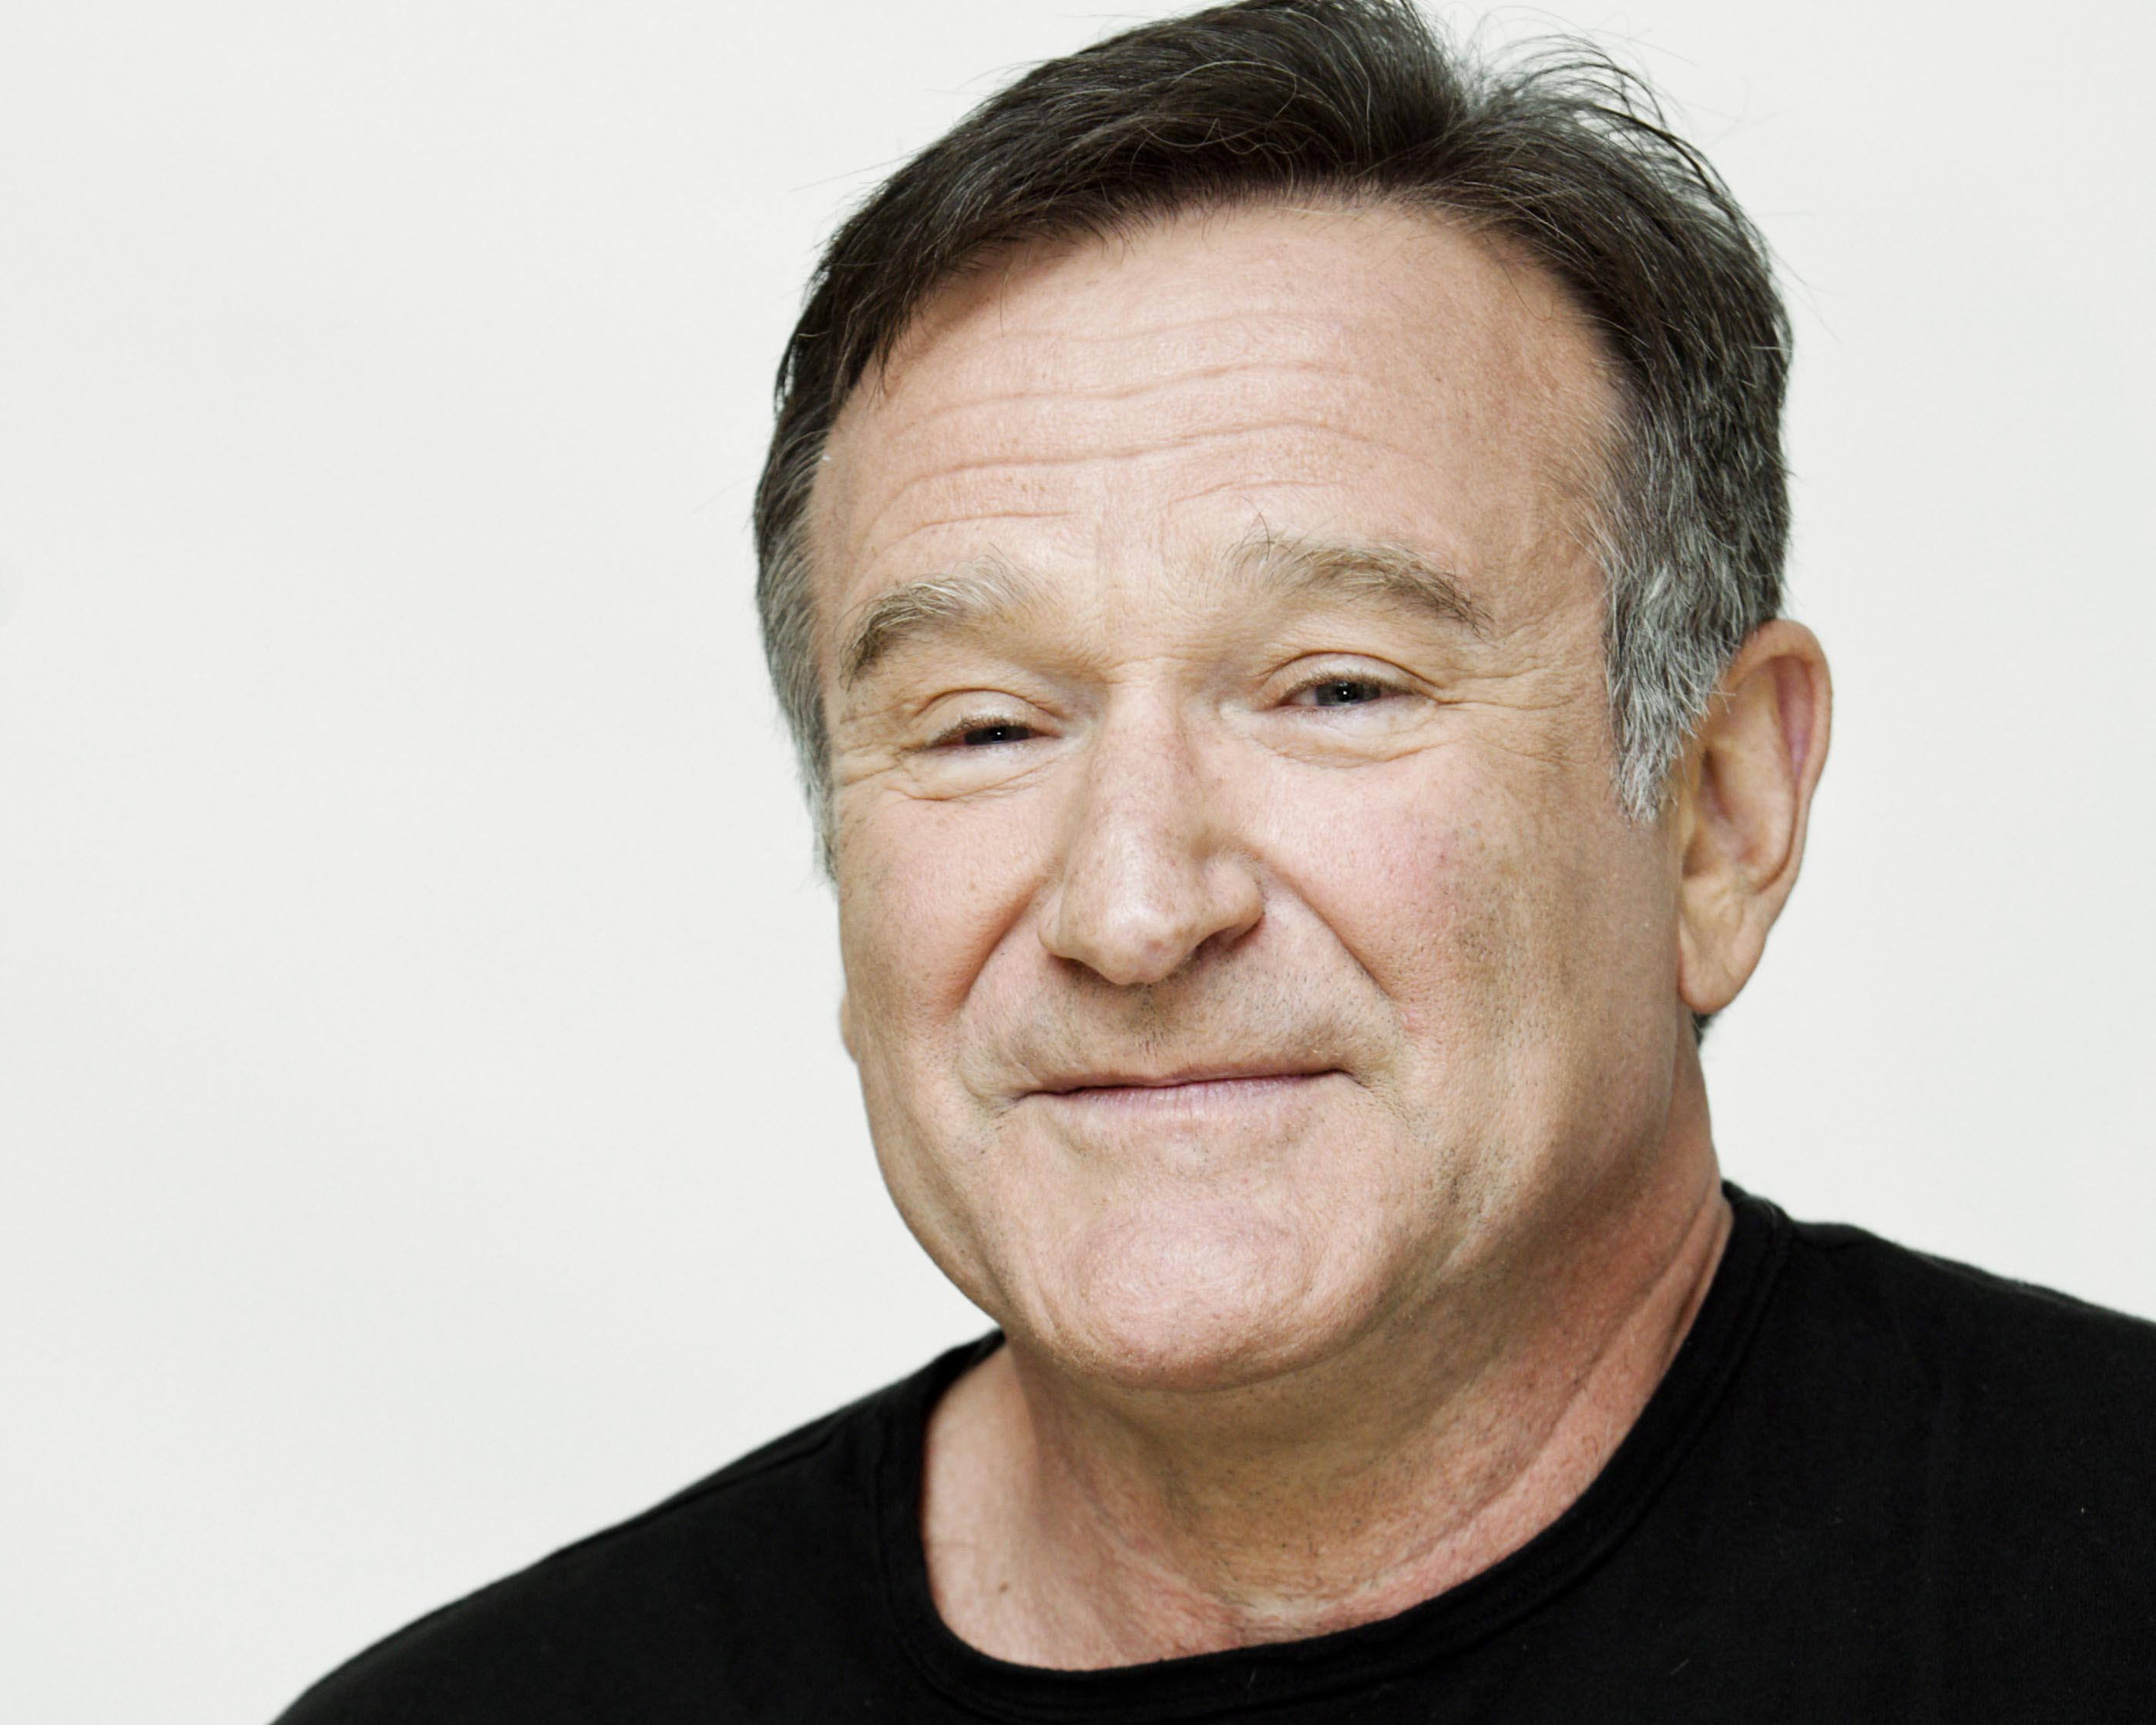 Robin Williams found dead at home | #8 Free HD Wallpapers, Images ...